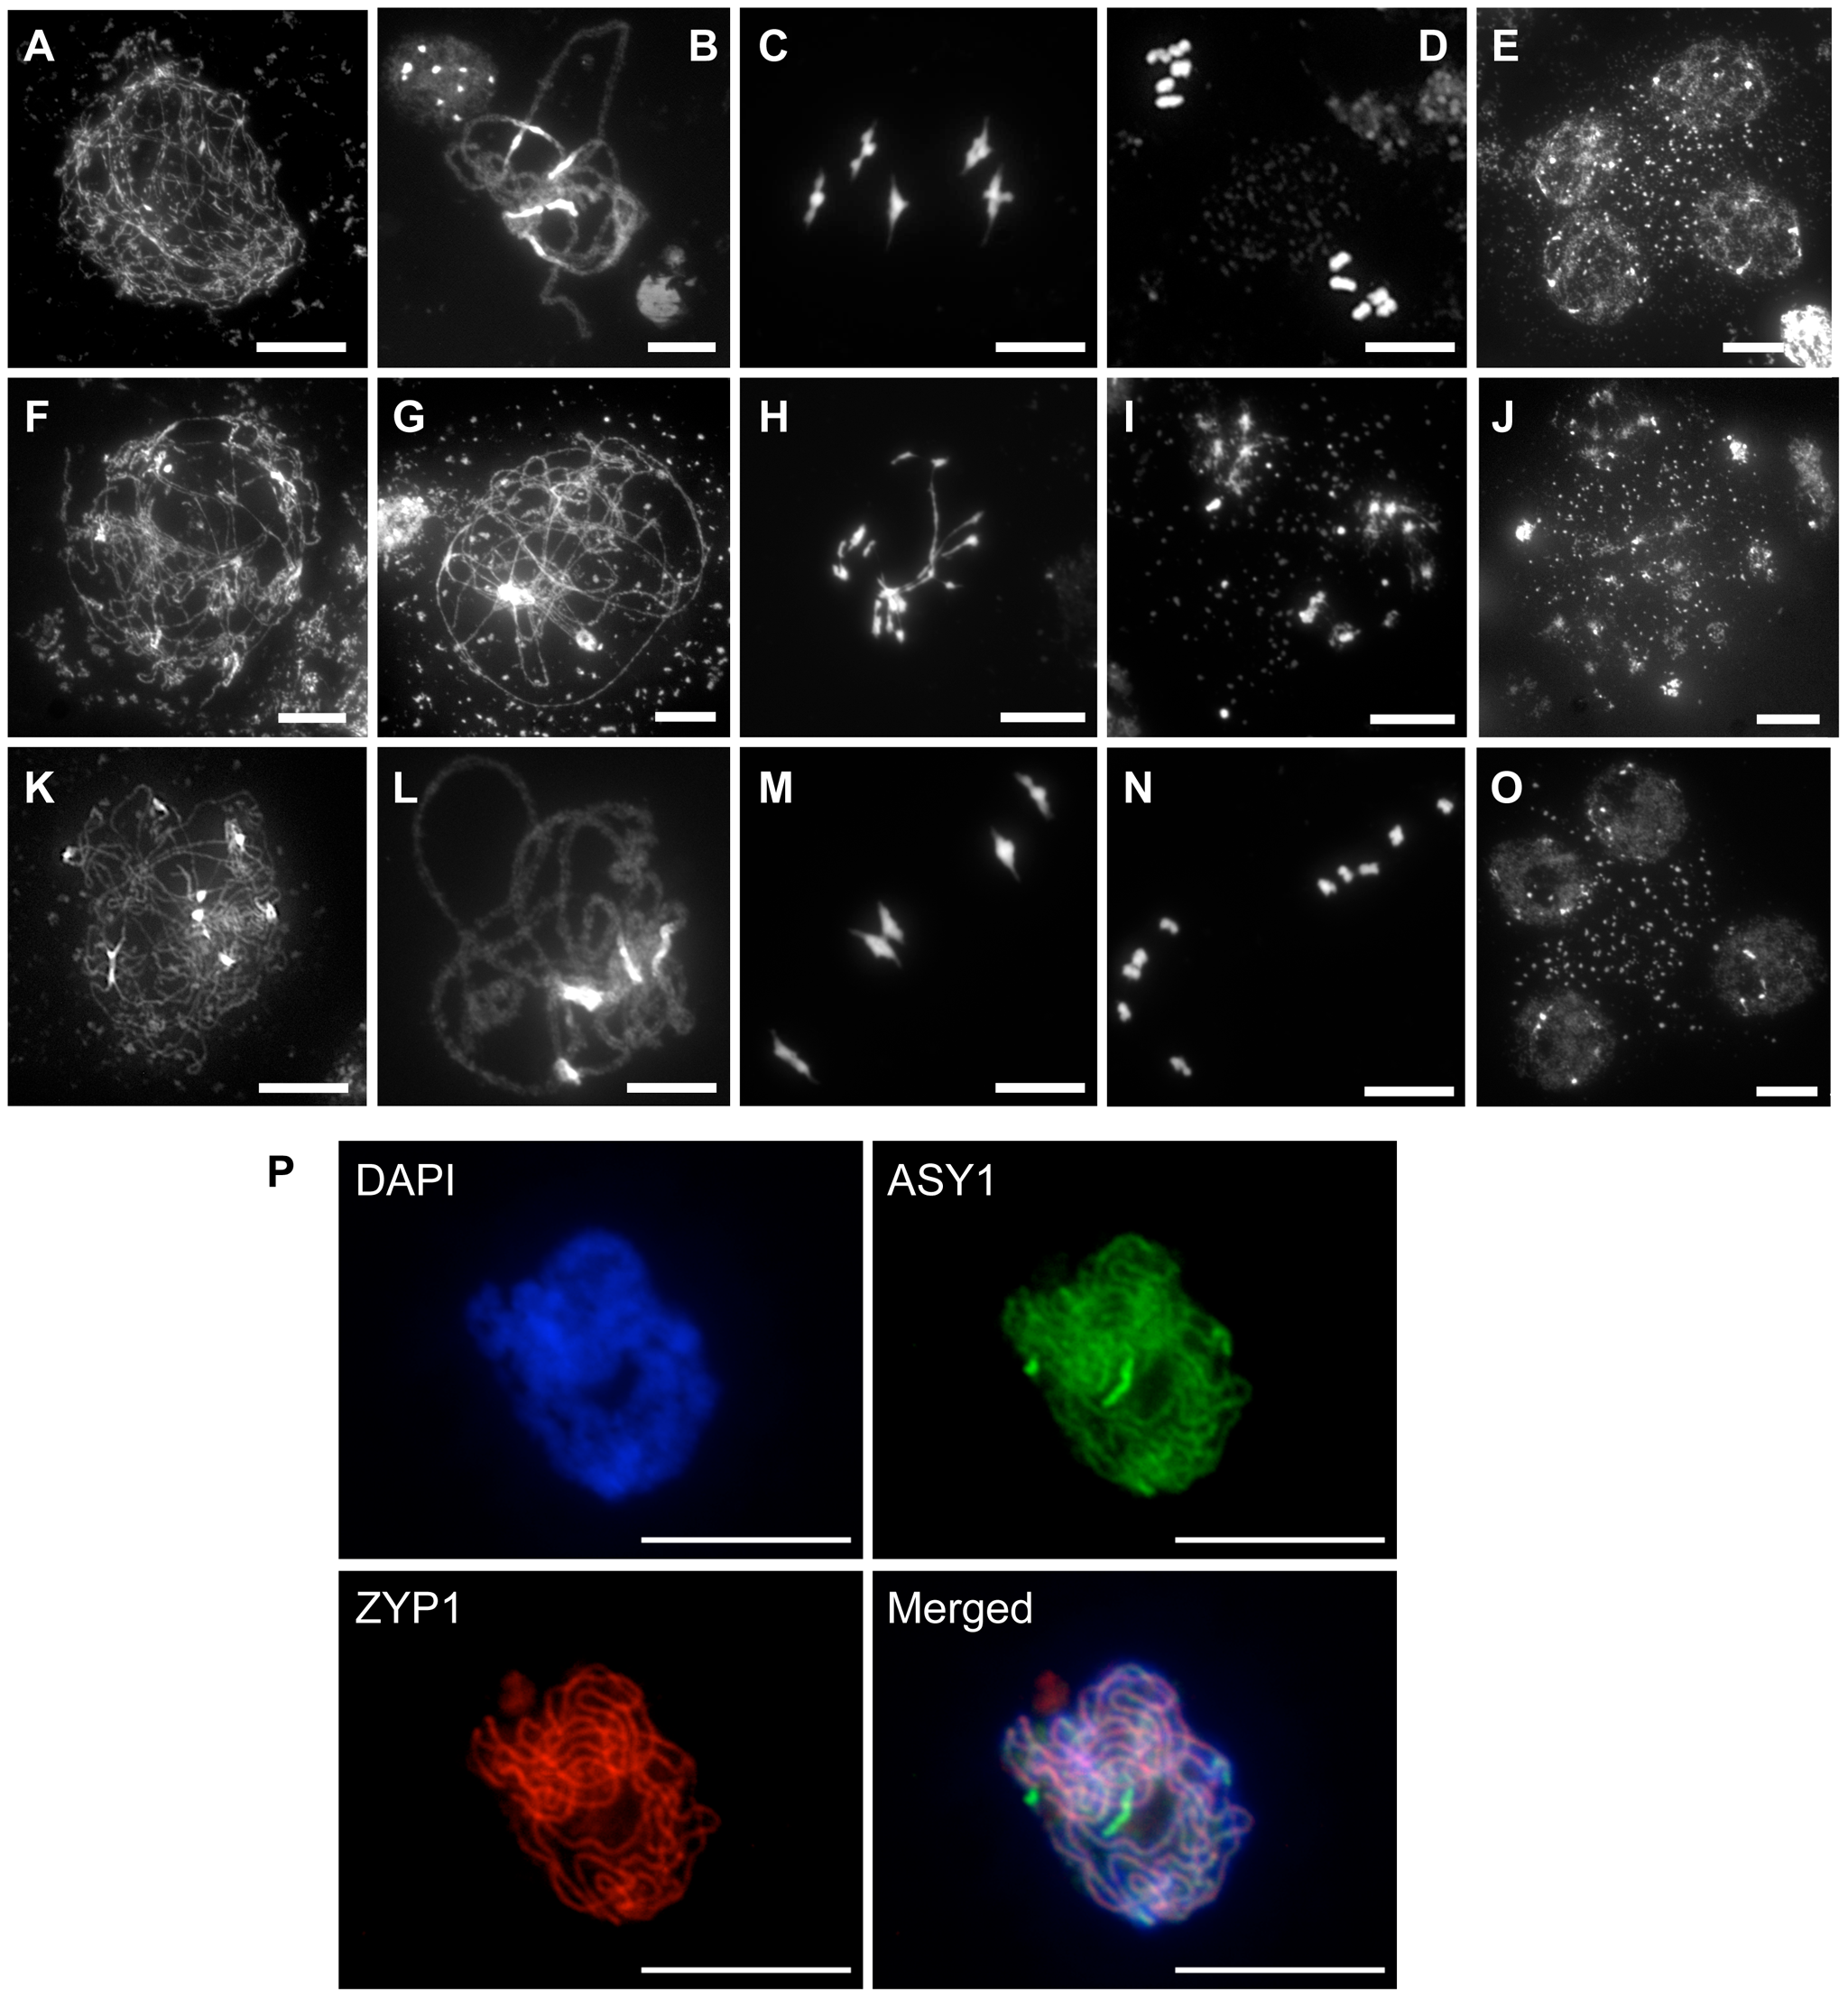 Progression of meiosis in WT (A to E), <i>rad51/rad51</i> (F to J) and <i>rad51/rad51</i> plants expressing the RAD51-GFP fusion protein (K to O).